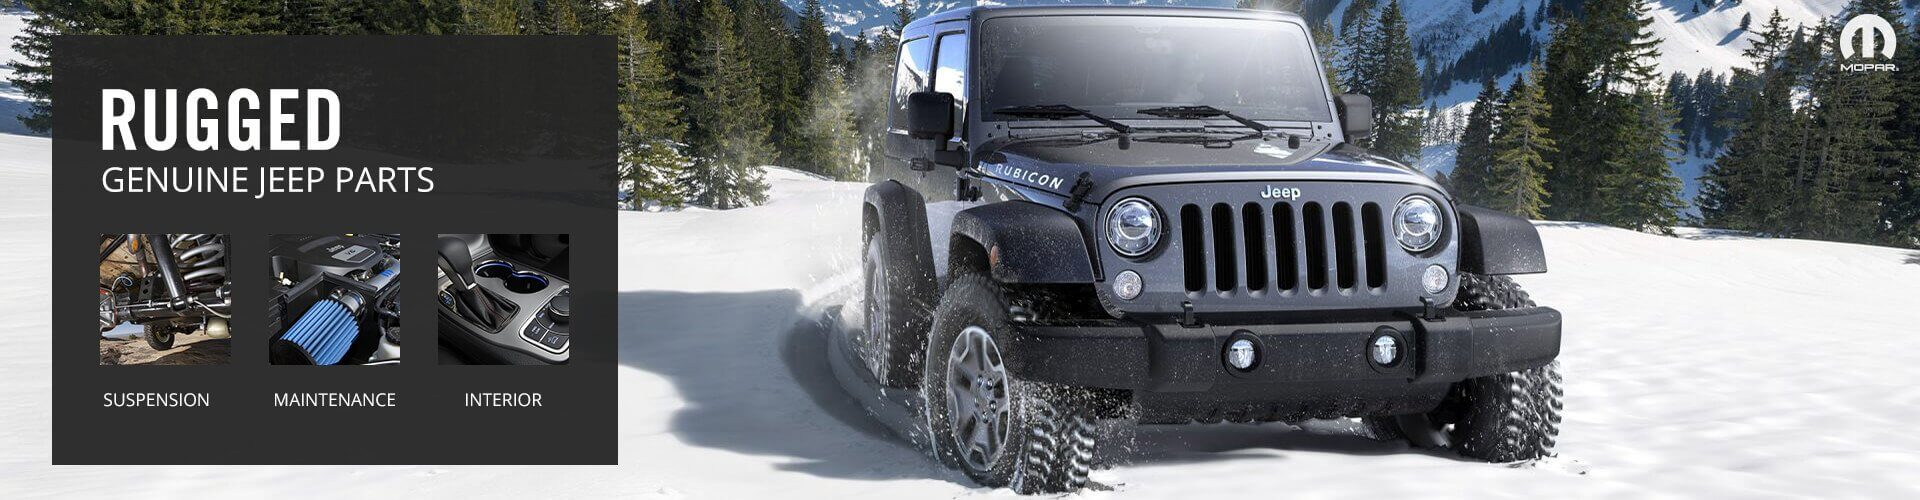 Genuine Jeep Parts & Accessories